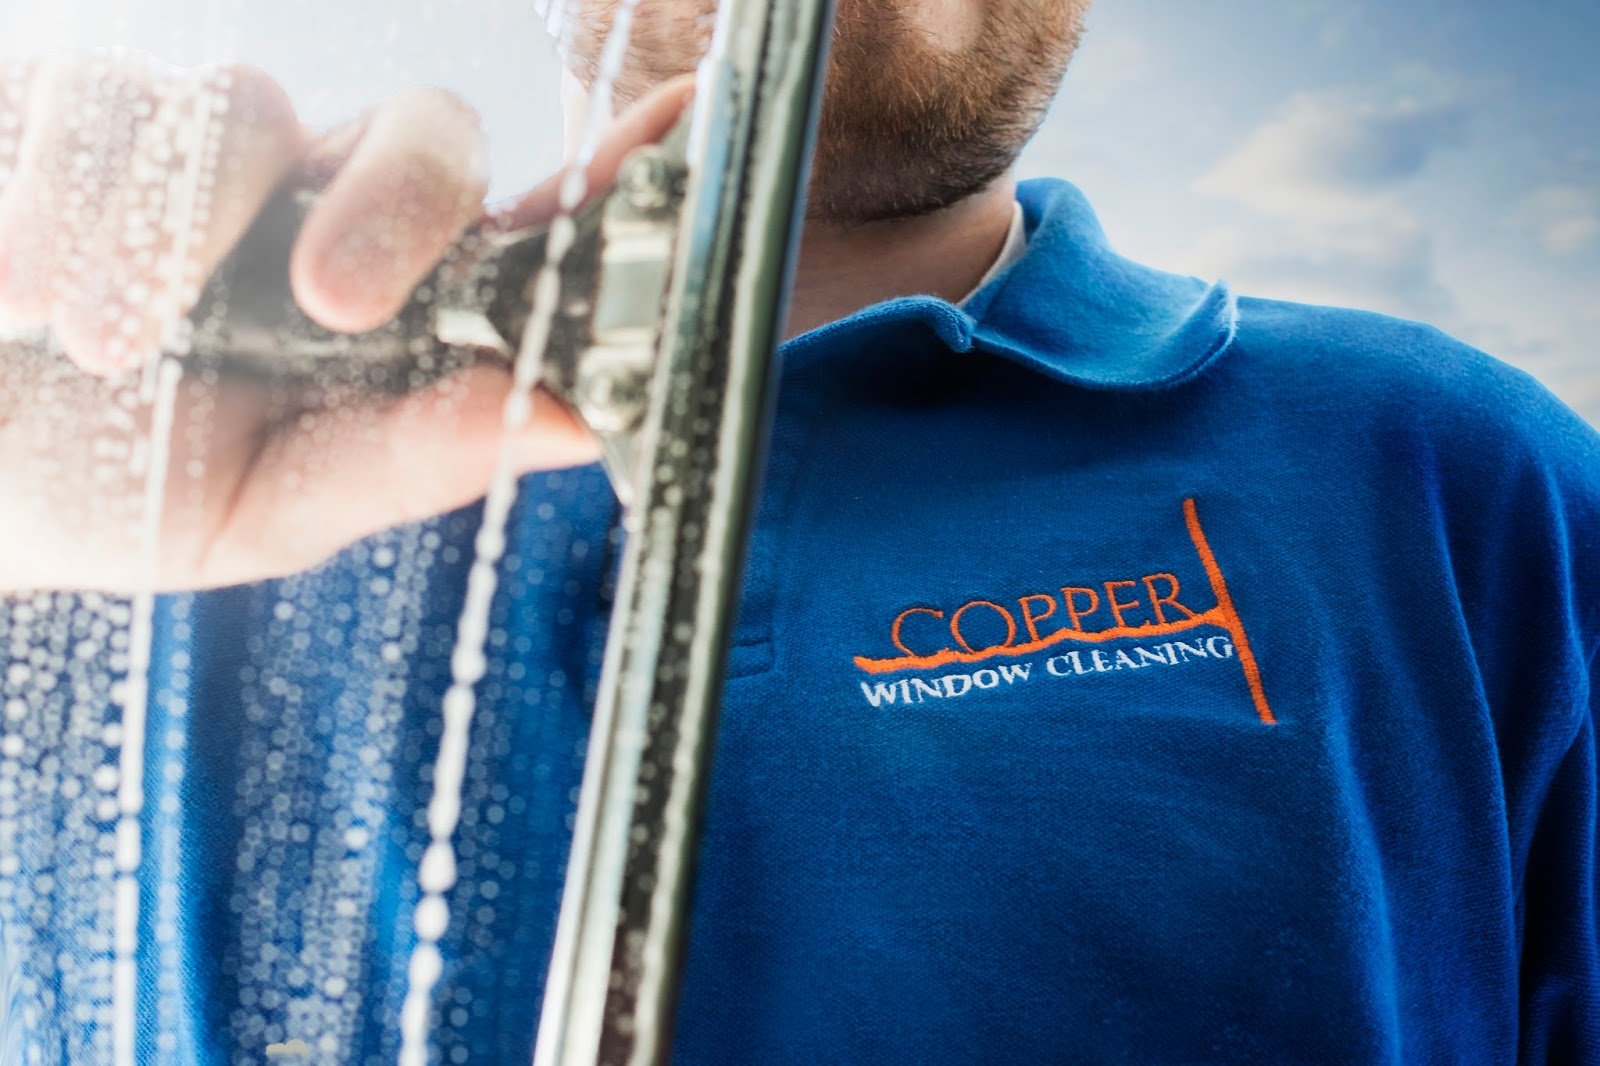 window cleaning salt lake city morning star window services copper cleaning salt lakes professional cleaning service